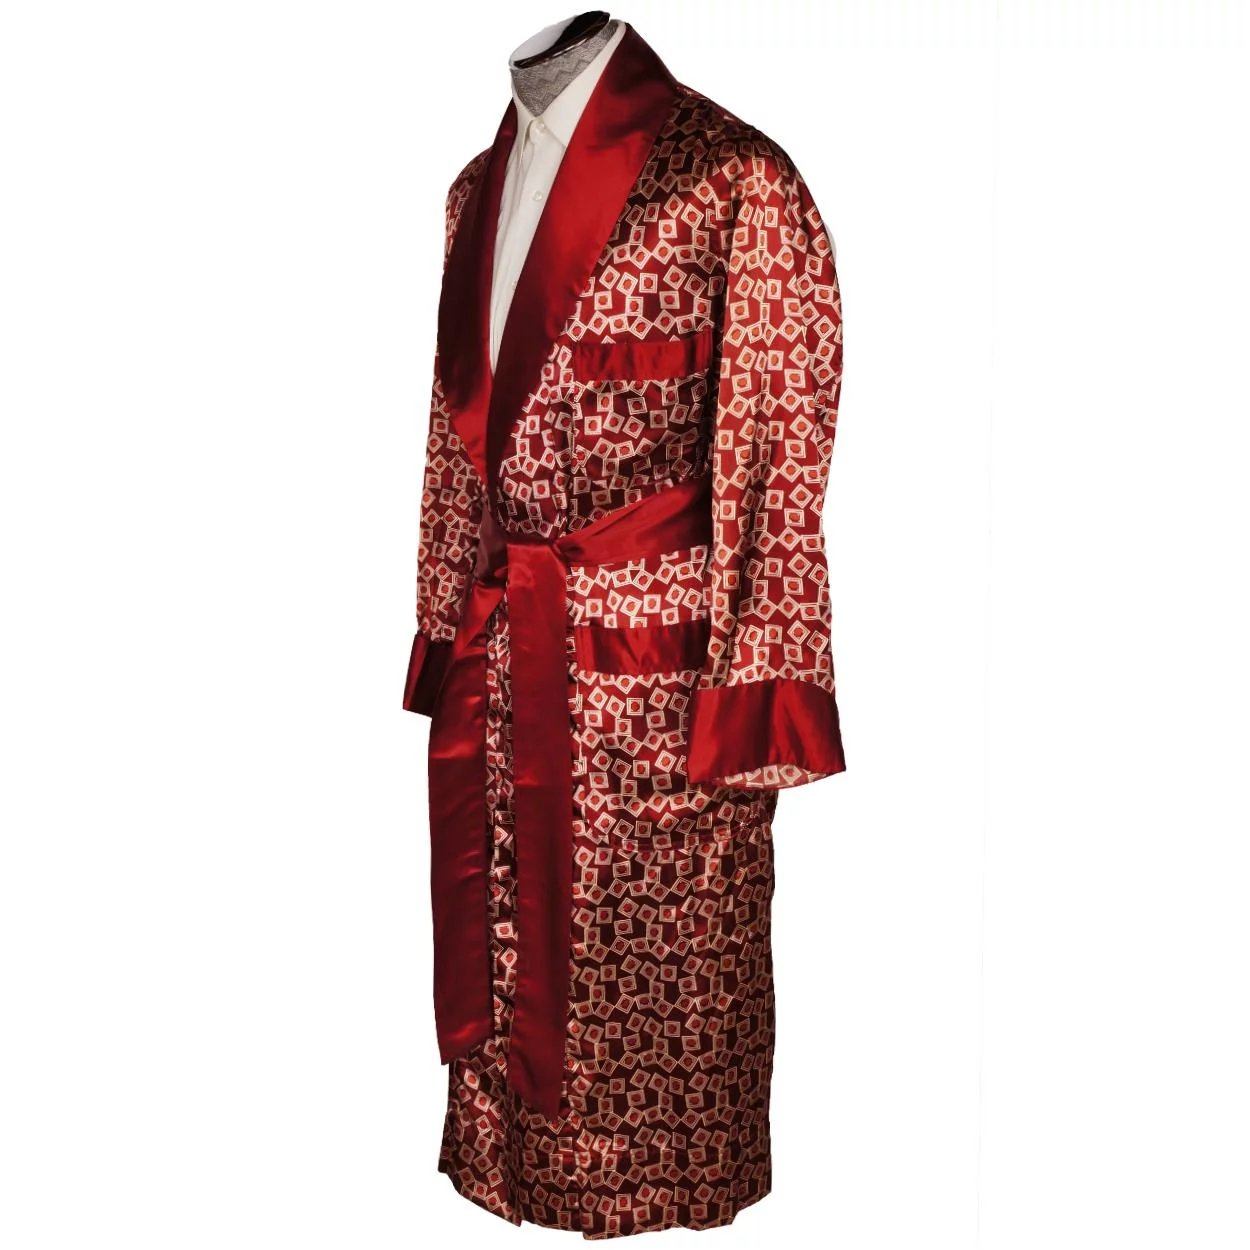 Vintage 1940s Mens Dressing Gown Smoking Lounging Robe by Tulipe ...